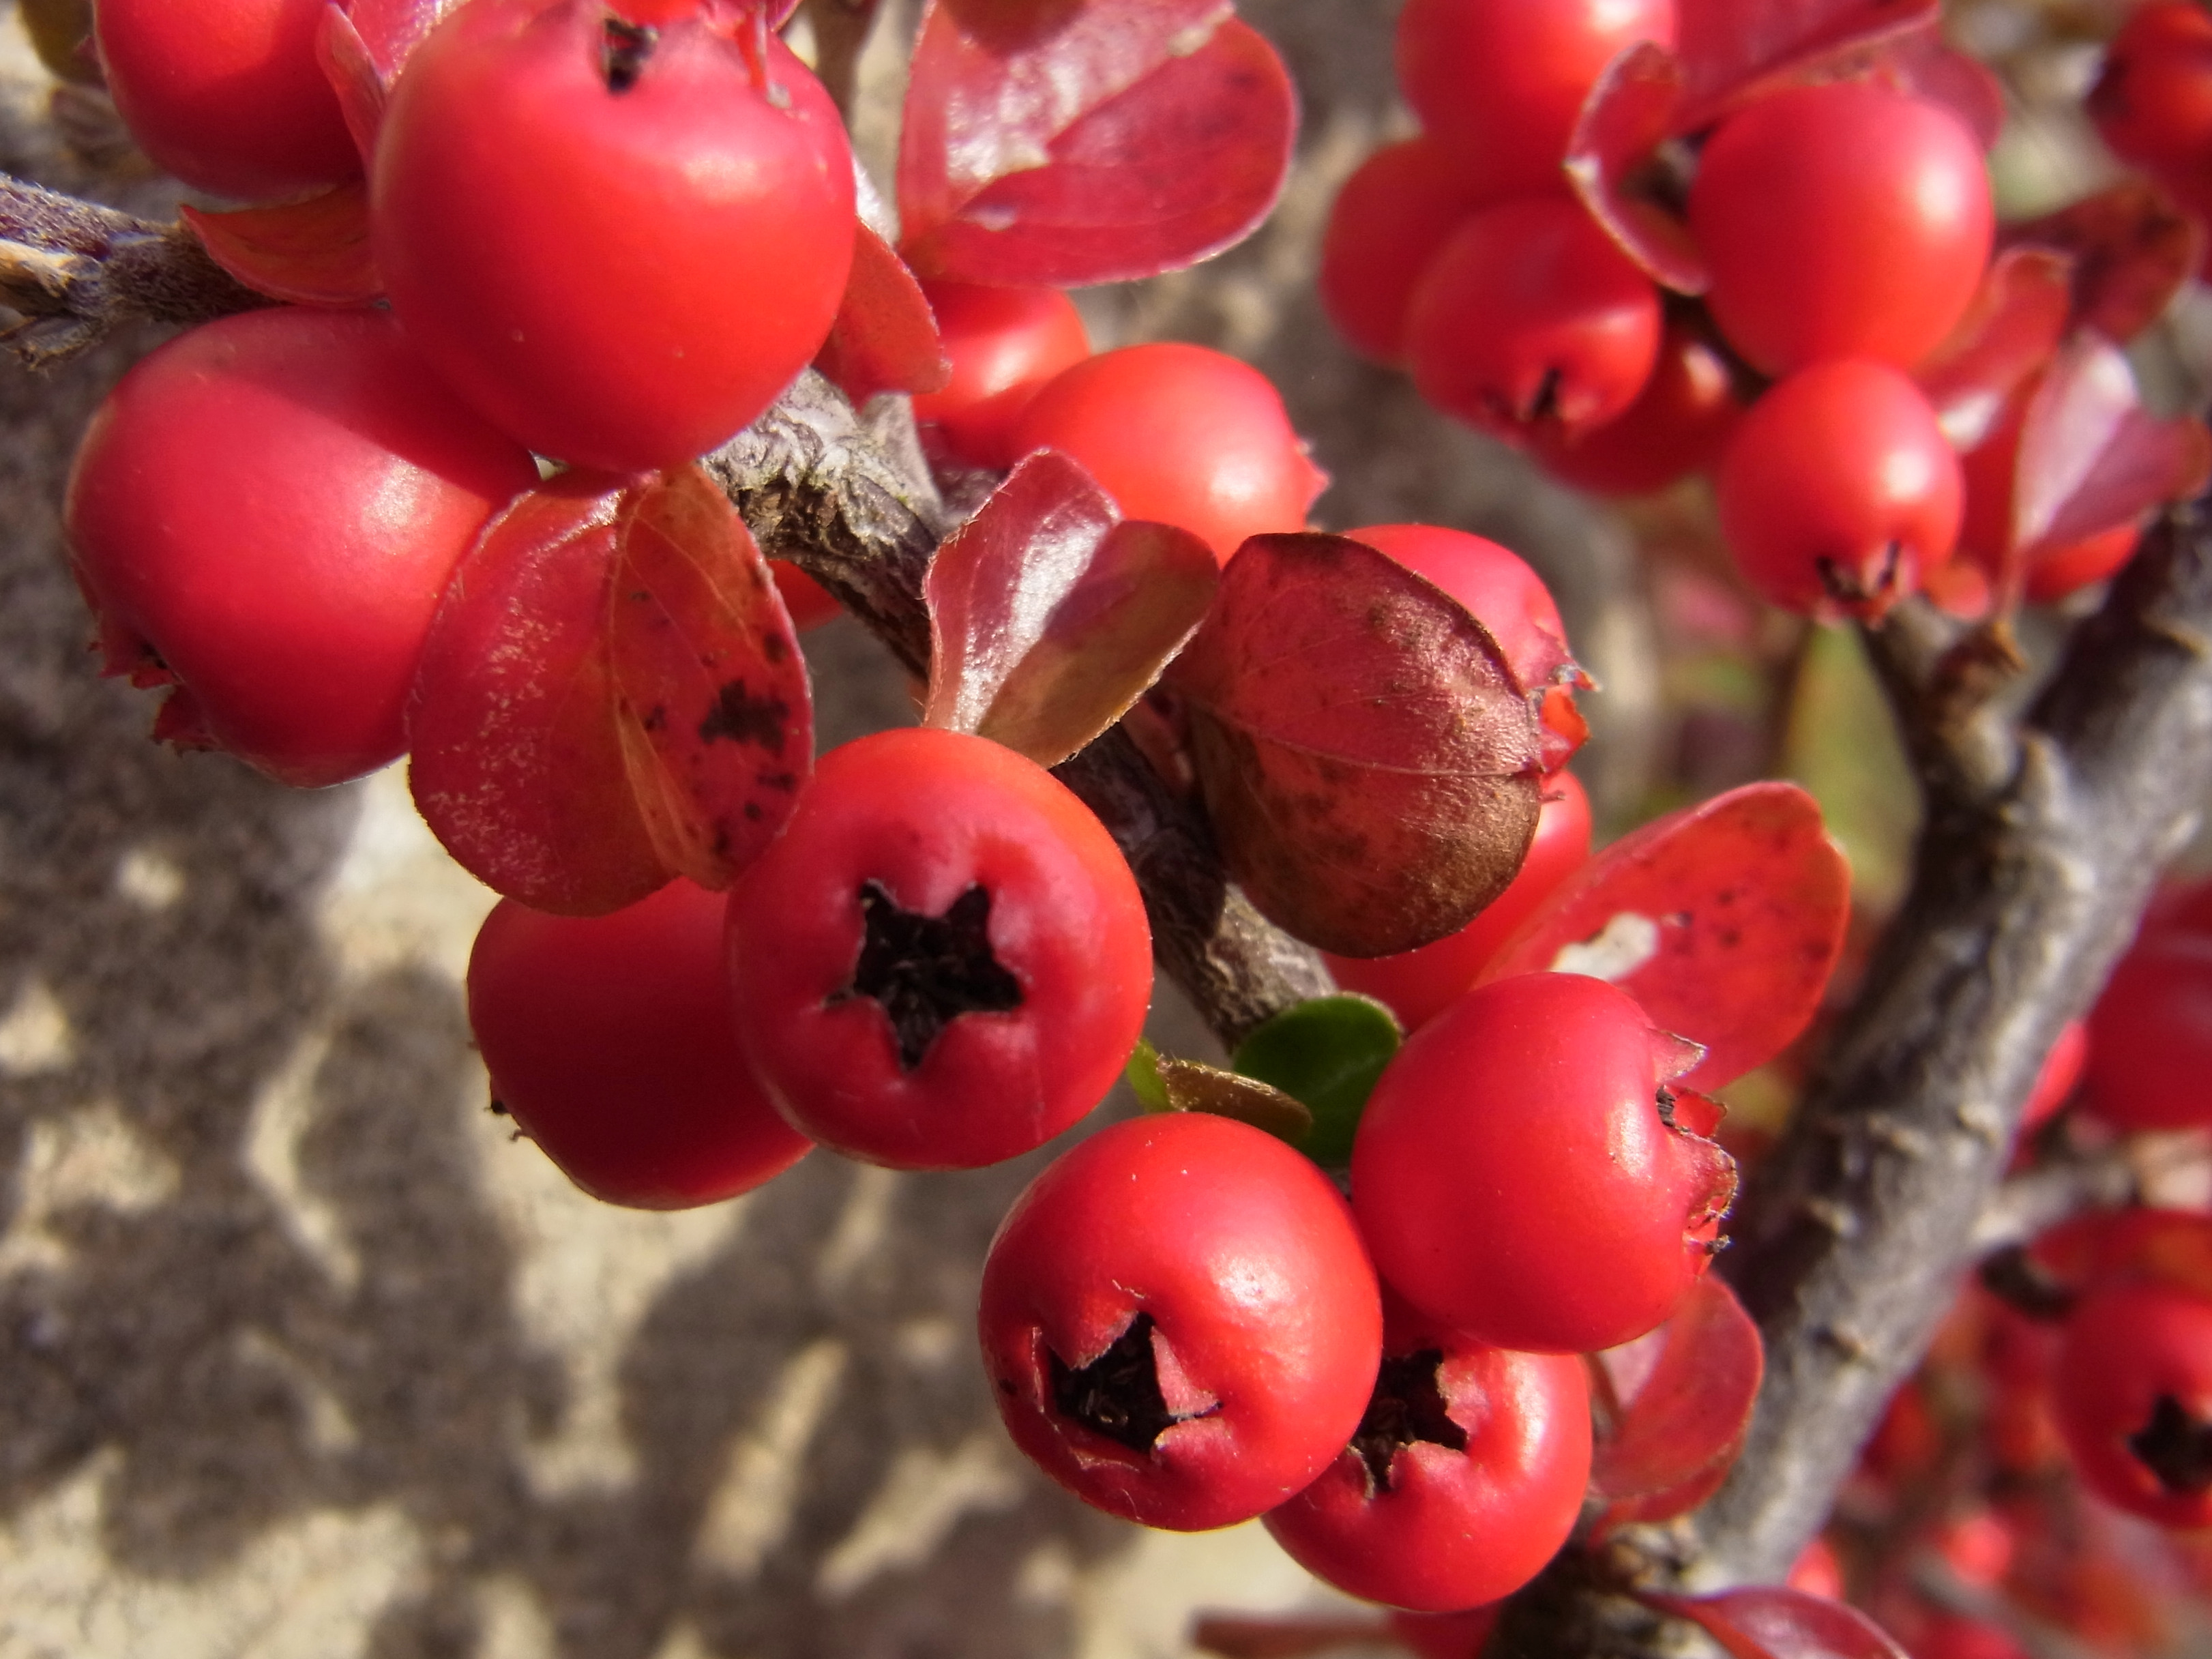 Cotoneaster at St Nicholas' Church